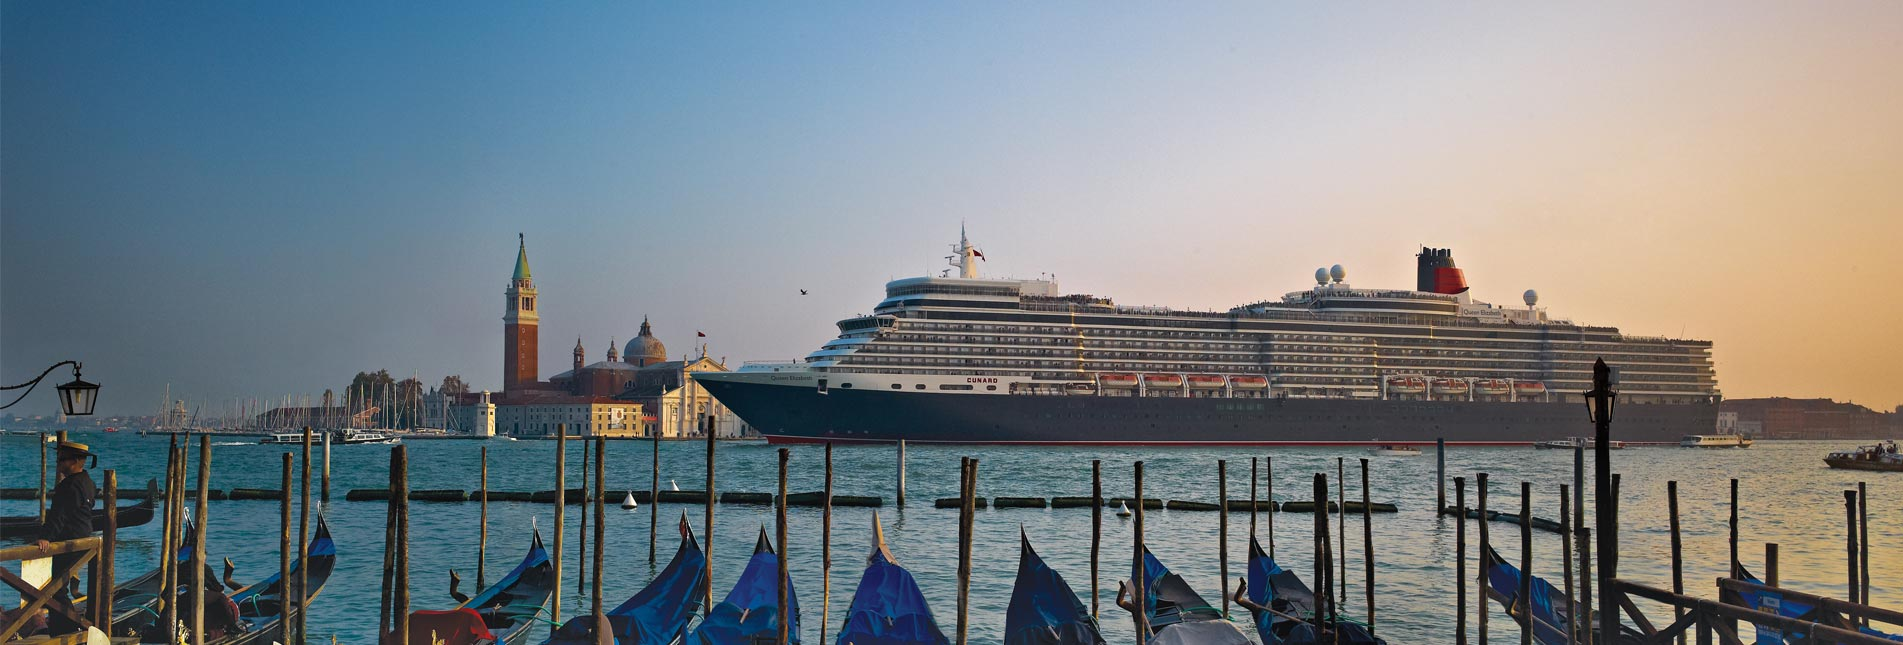 Cunard Queen Elizabeth in Venice